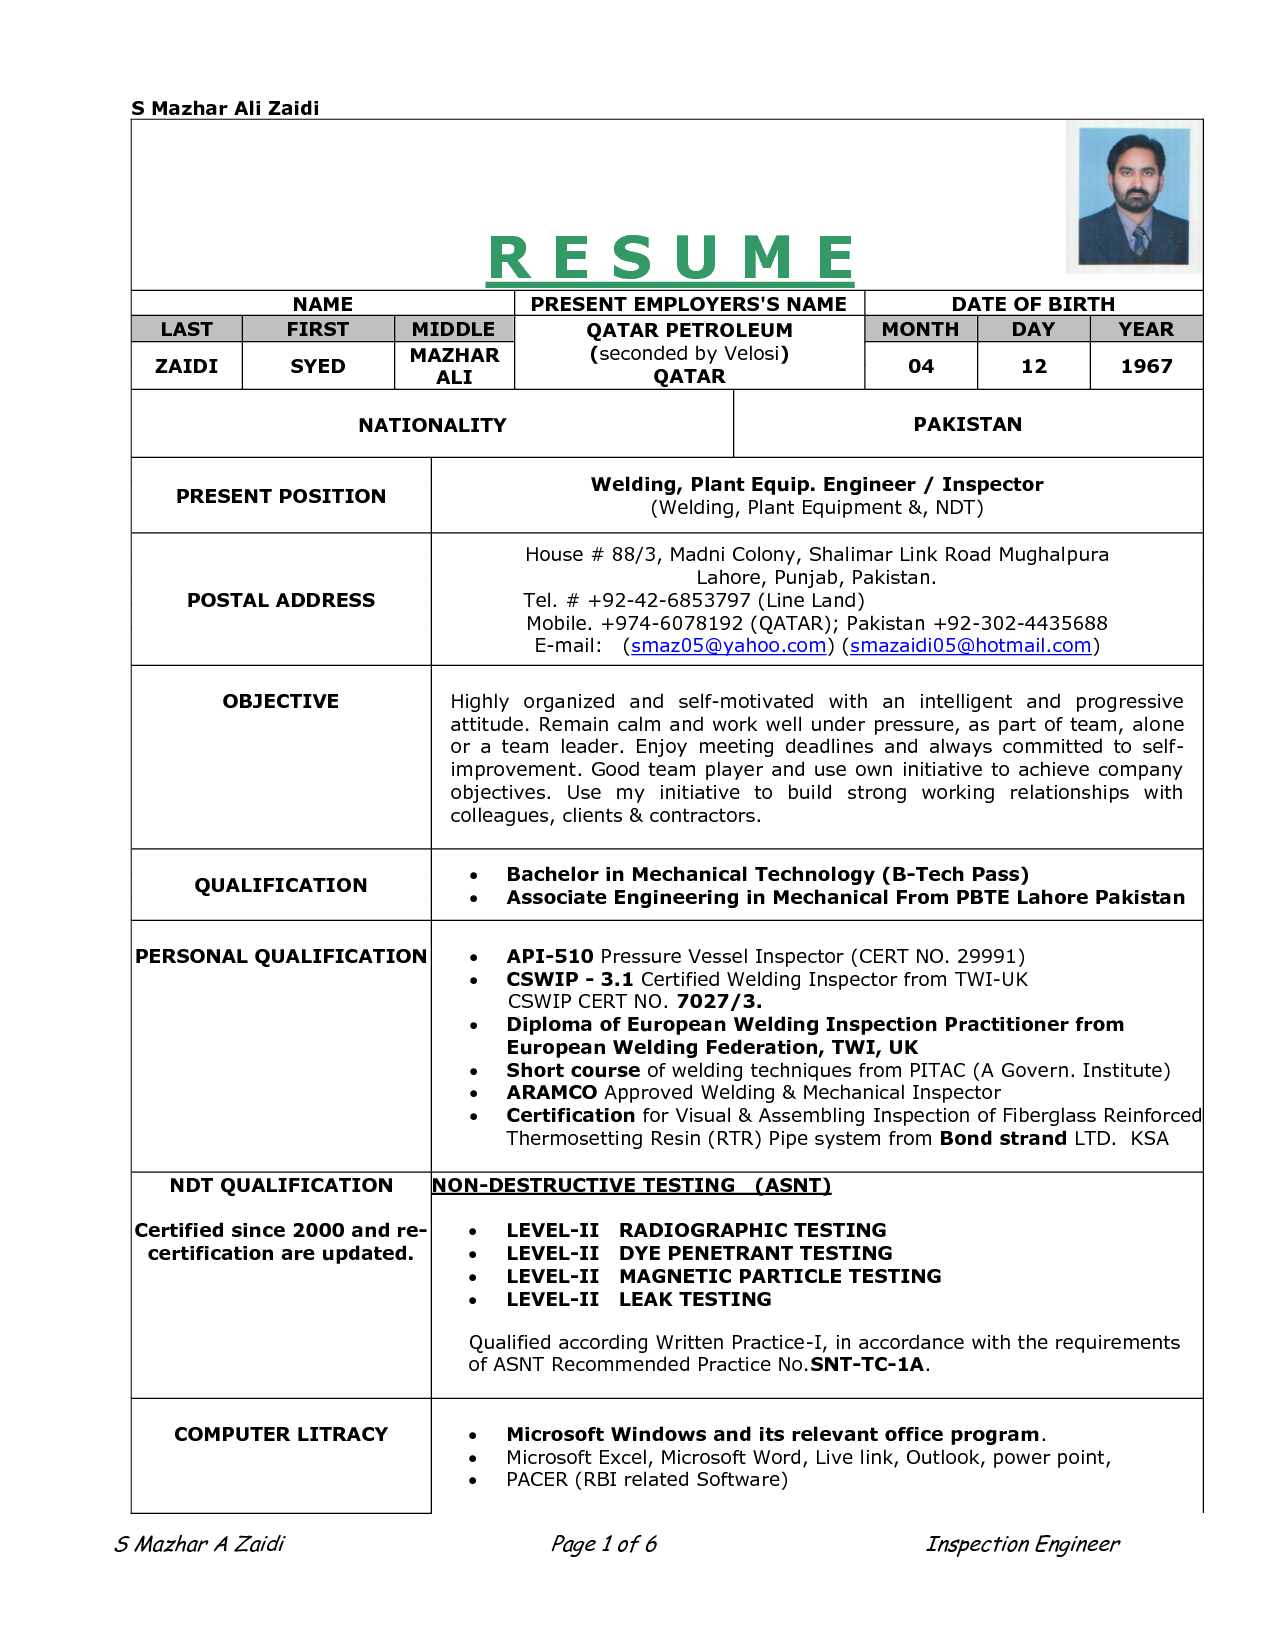 Re Work Procedure Resume.doc Download legal documents Re ...